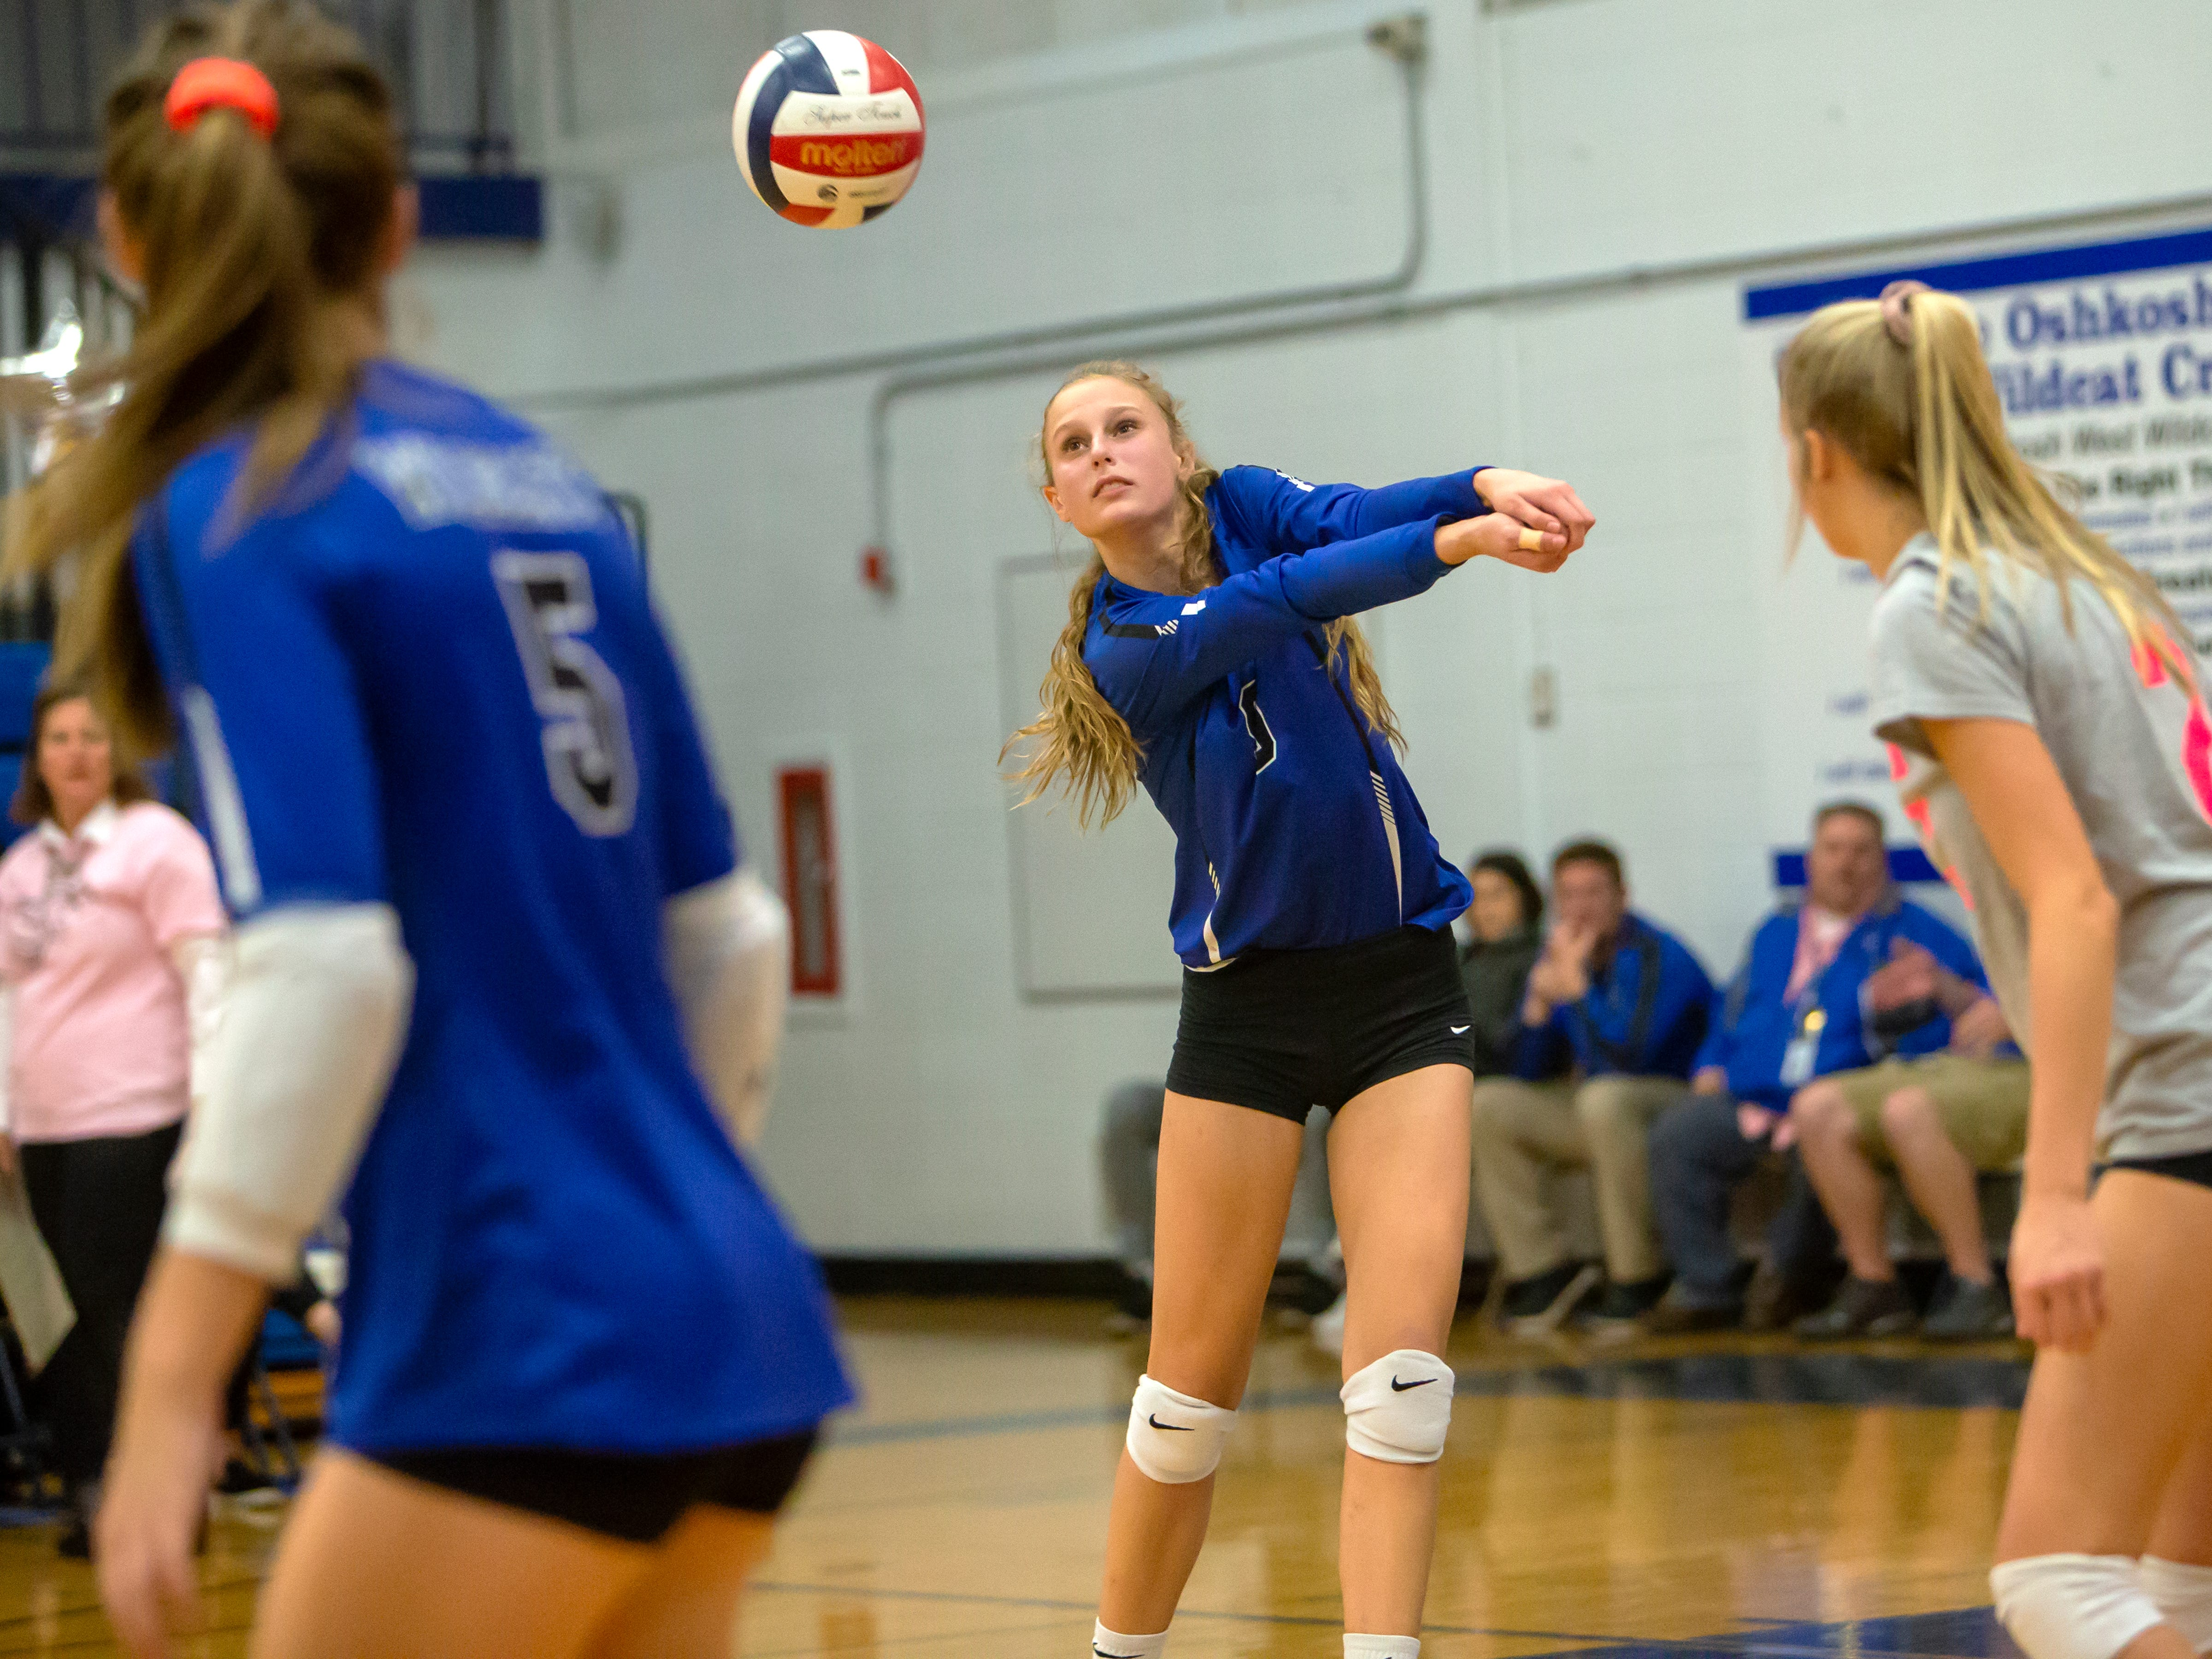 Oshkosh West's Eva Beeth takes the shot playing at Oshkosh West High School on Thursday, October 11, 2018.